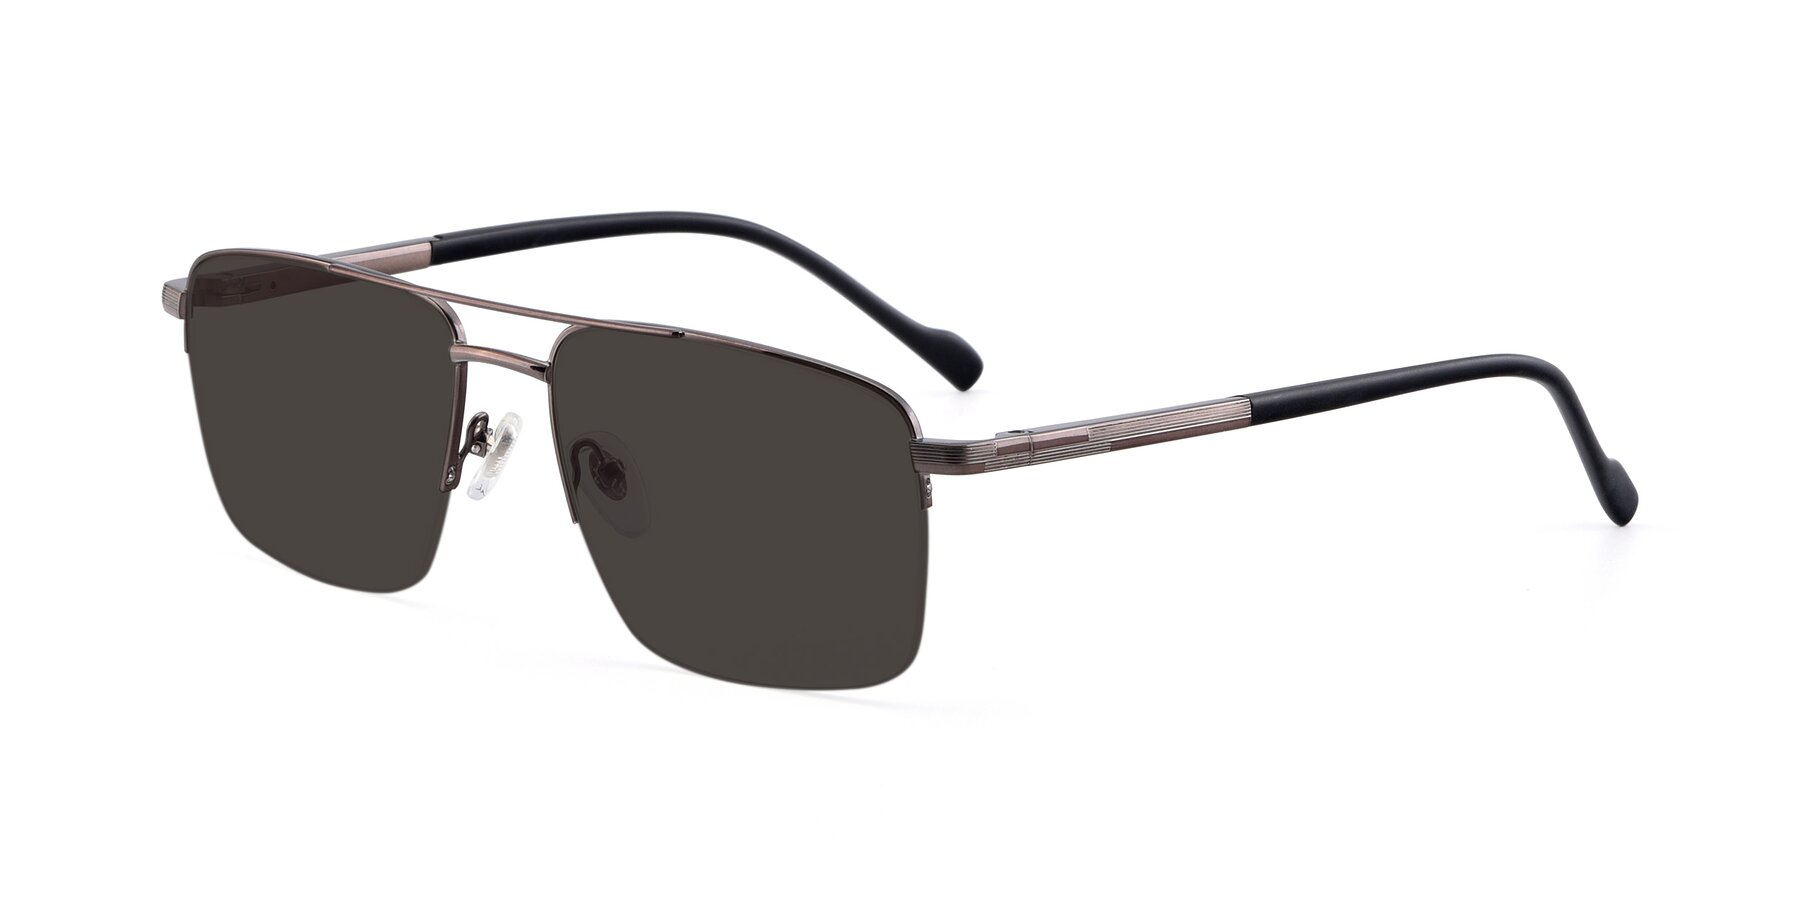 Angle of 19013 in Gunmetal with Gray Tinted Lenses